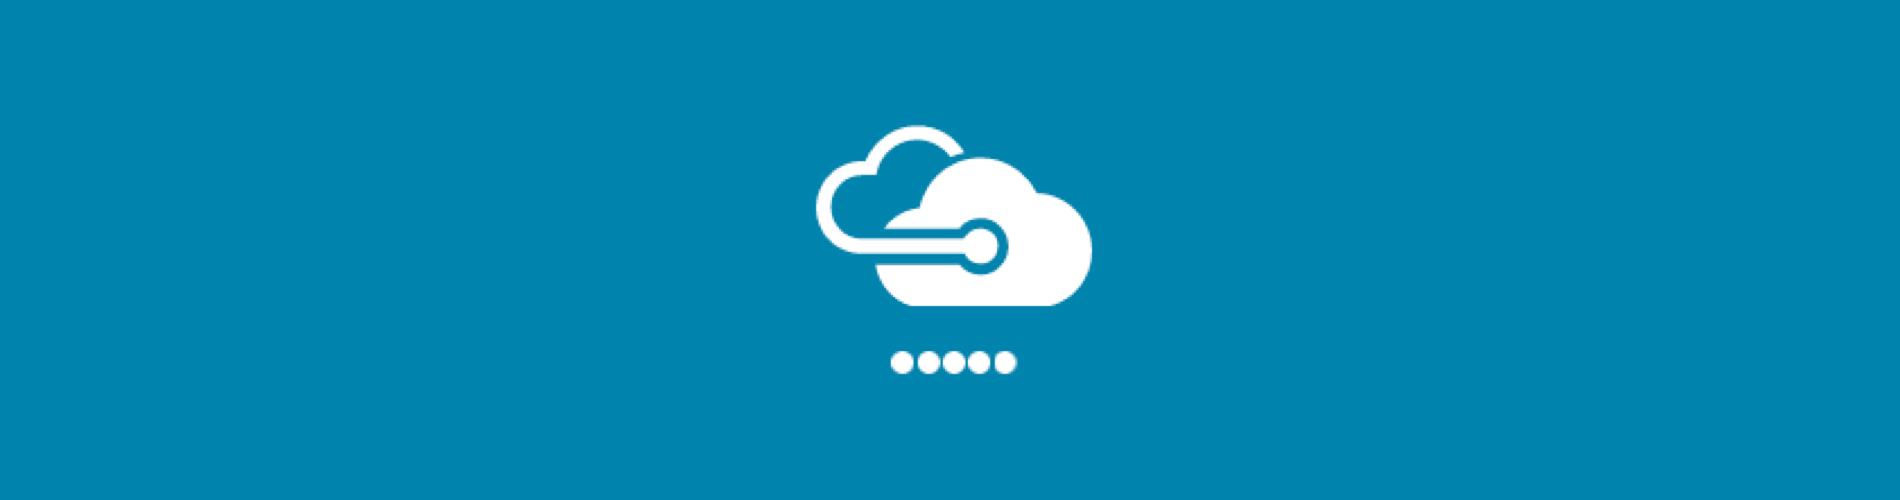 Azure Cloud feature image